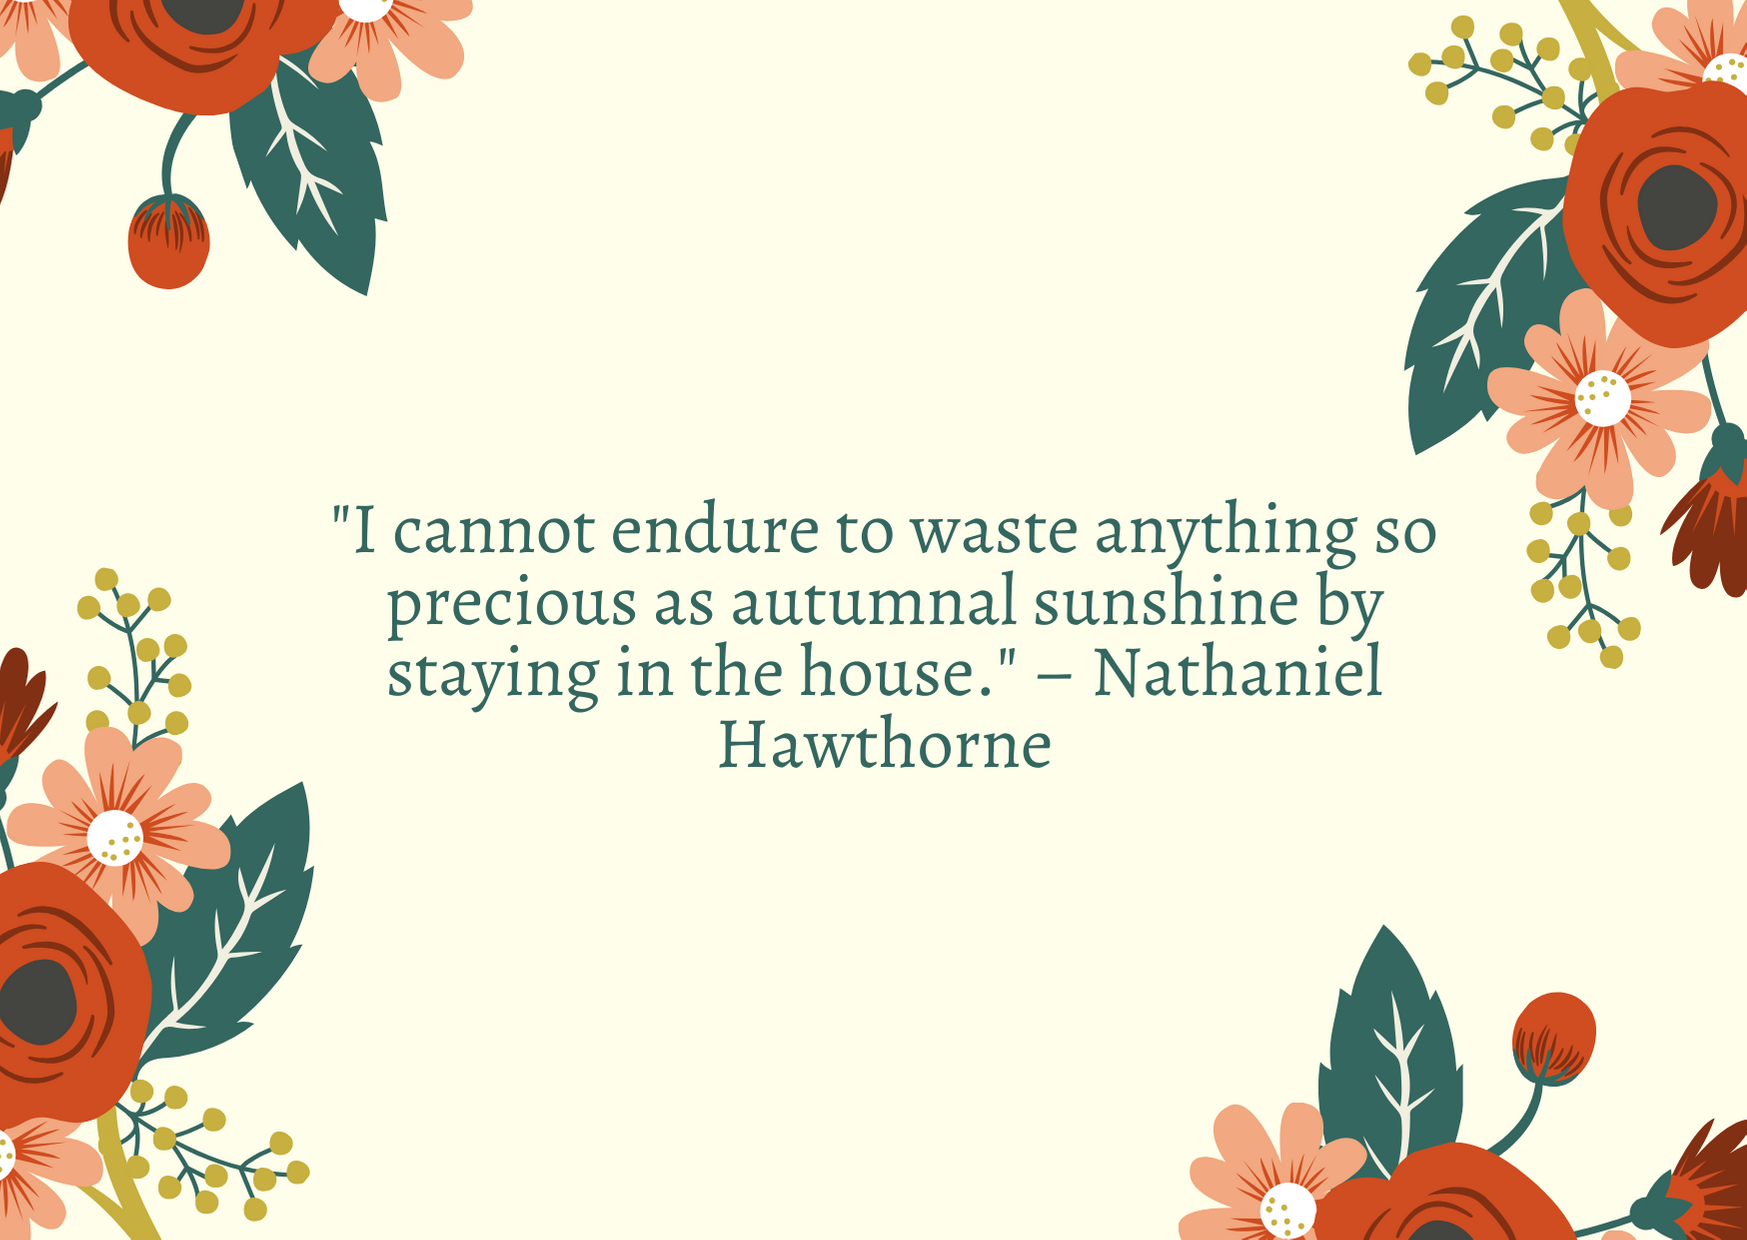 """I cannot endure to waste anything so precious as autumnal sunshine by staying in the house."" – Nathaniel Hawthorne"